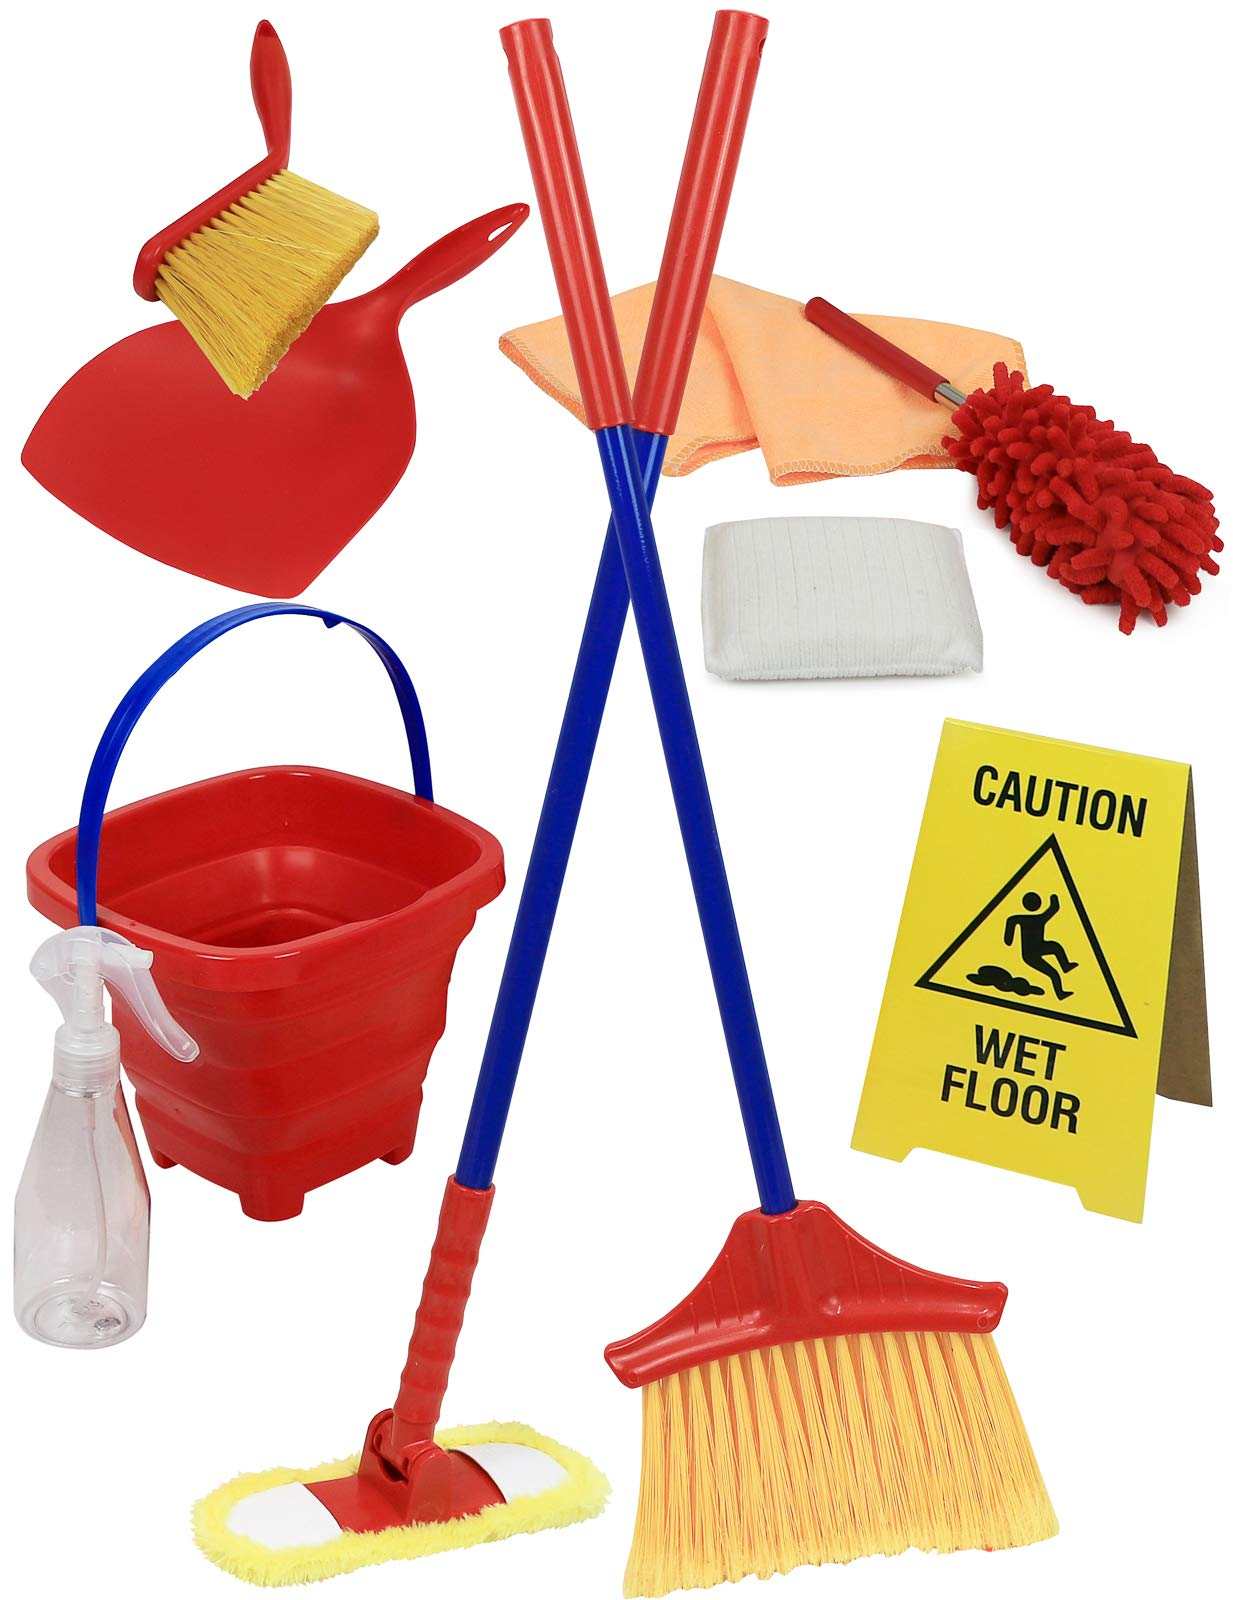 Click N' Play Pretend Play Housekeeping Cleaning Set Includes Broom Dustpan Duster Mop Collapsible Bucket Sponge & More (Set of 10) by Click N' Play